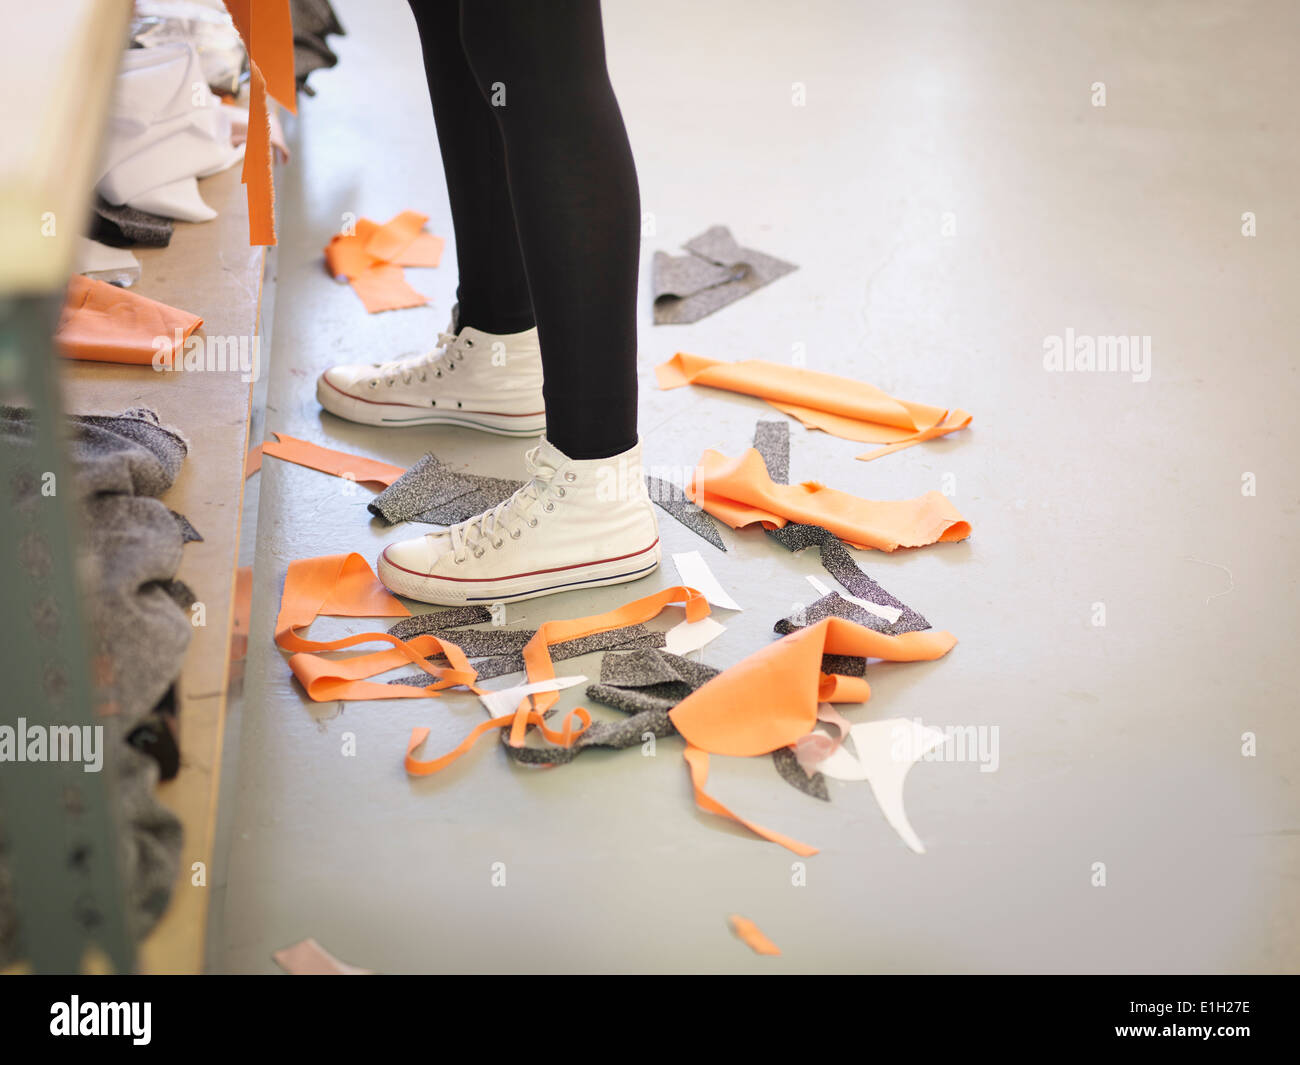 Off-cut material on floor in fashion design studio - Stock Image